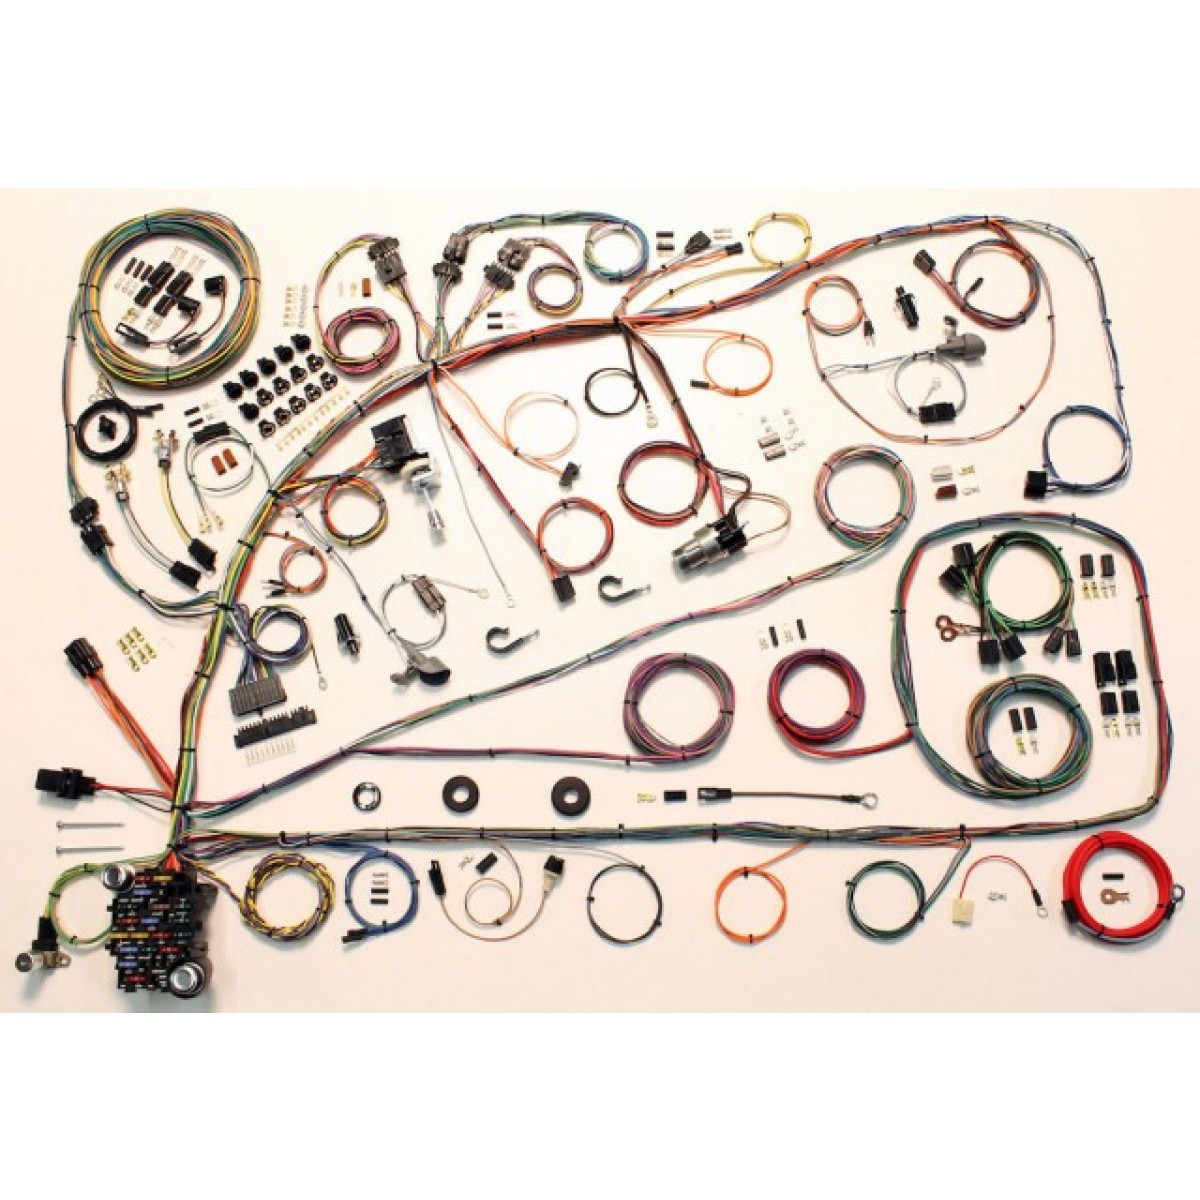 hight resolution of complete wiring harness kit 1966 1967 ford fairlane part 510391